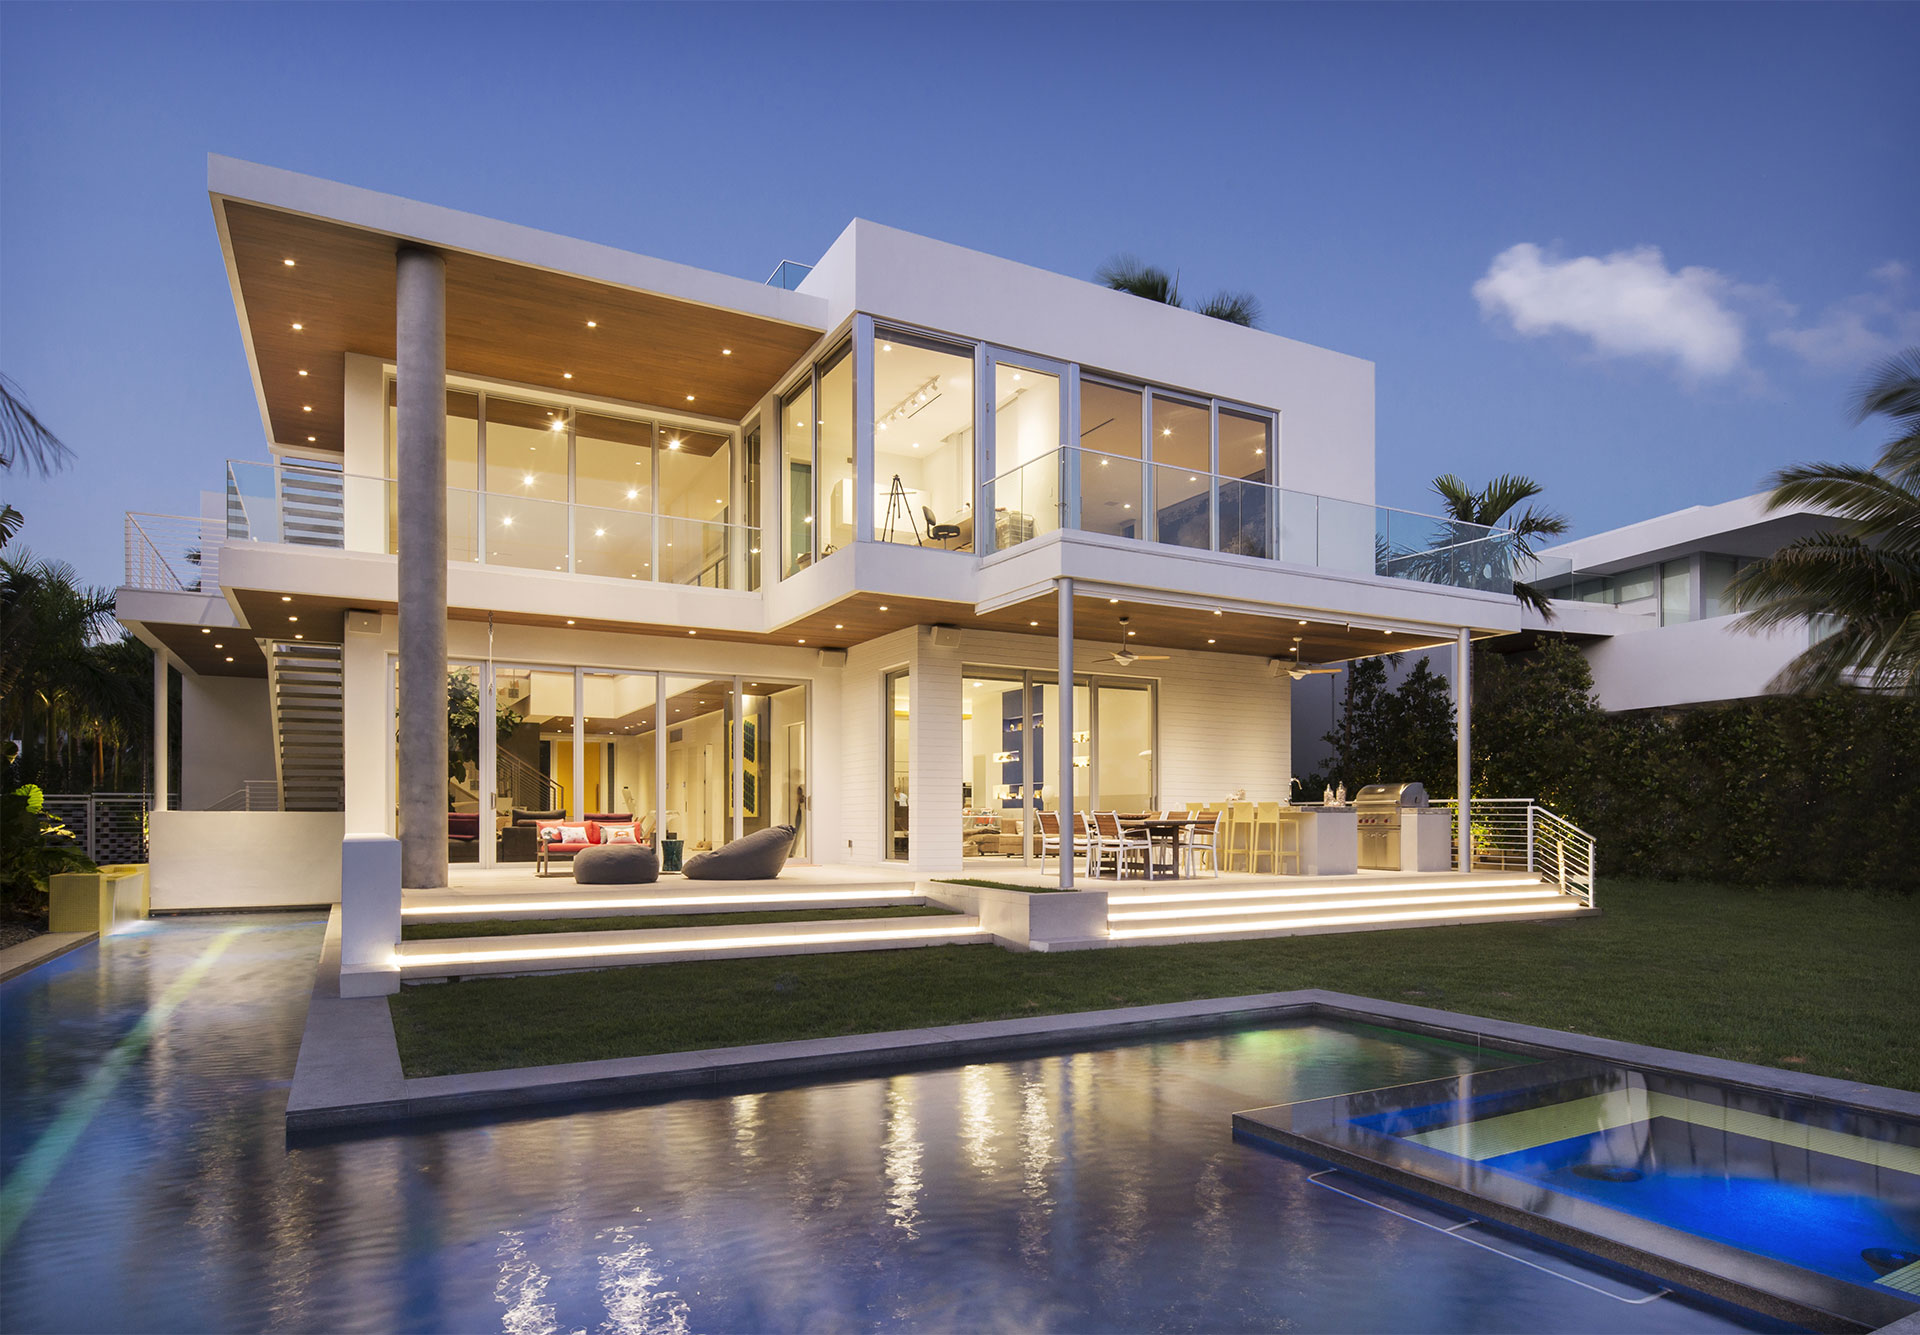 Swimming Pool Front View Exterior Architecture project in 484 North Parkway, Florida